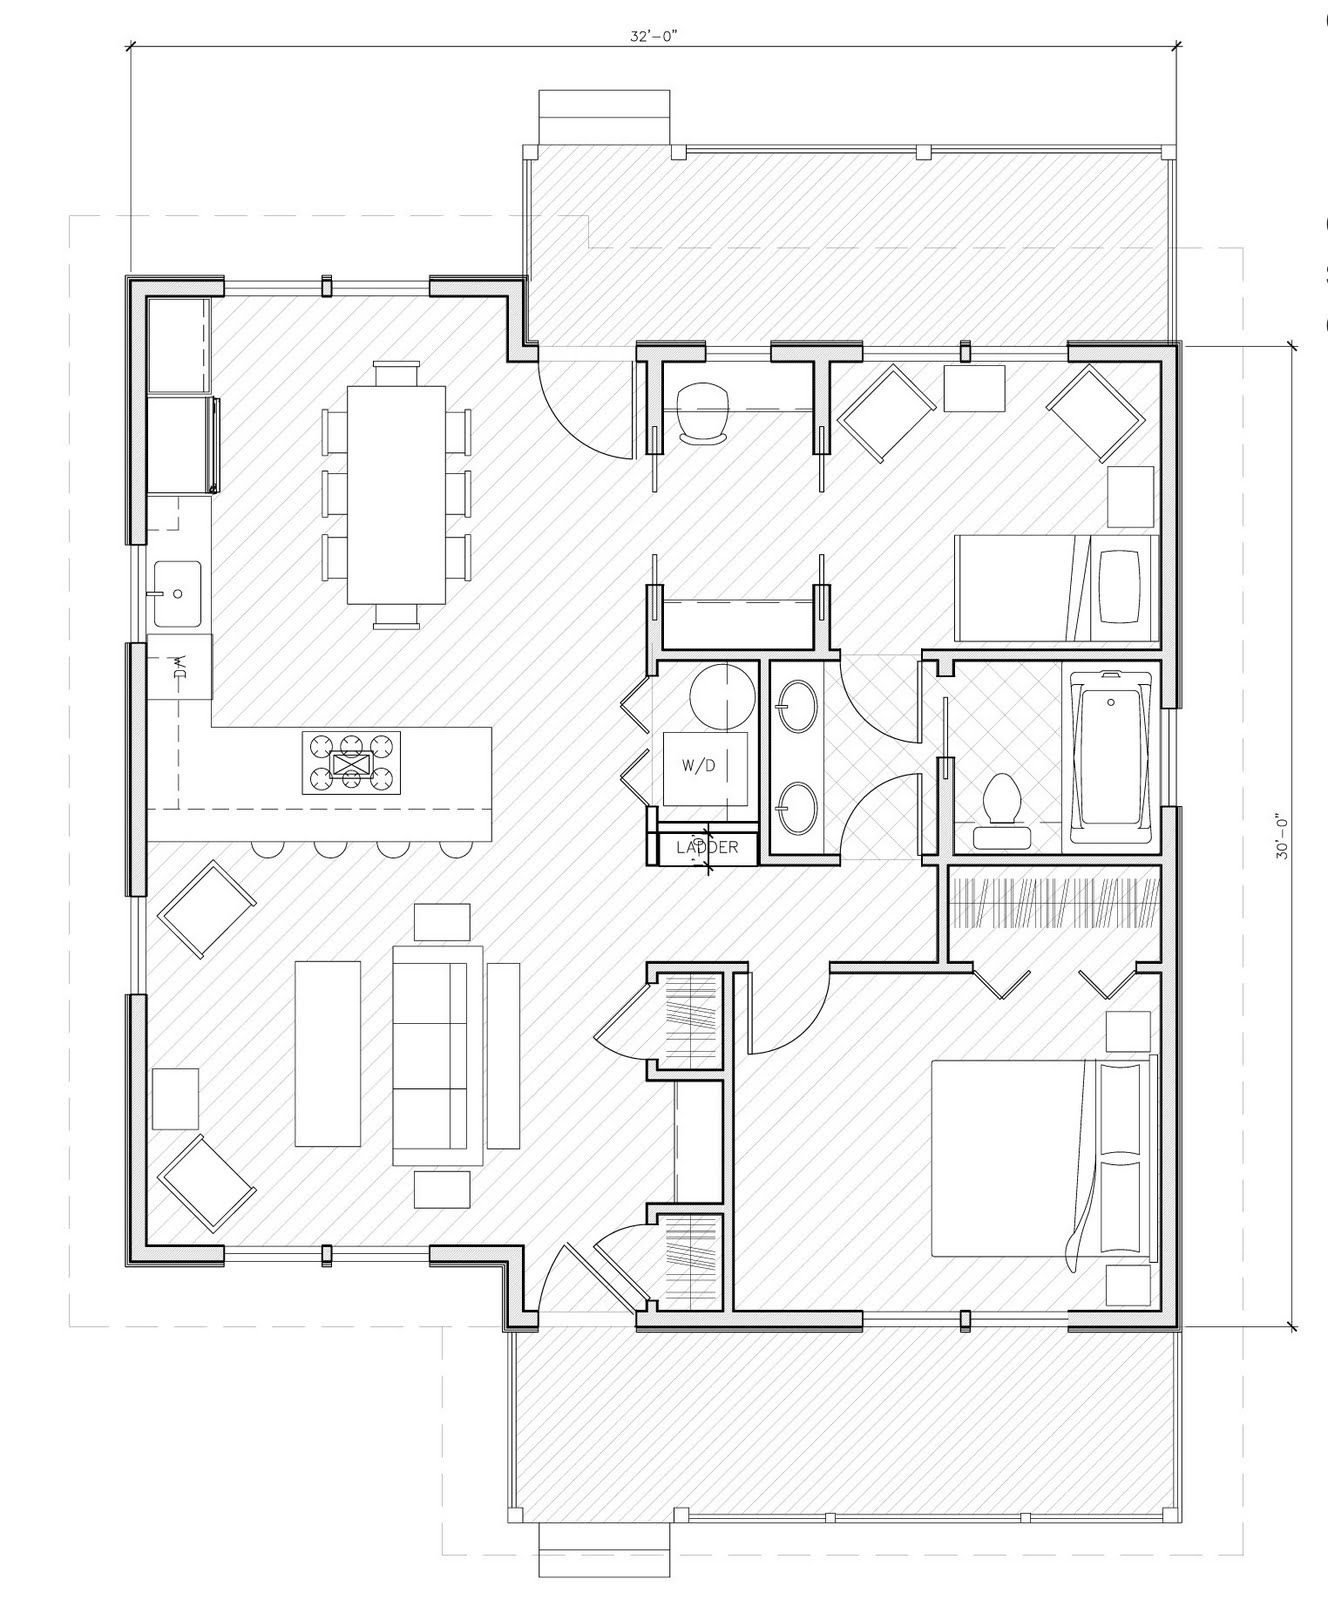 Small house plans under 1000 sq ft